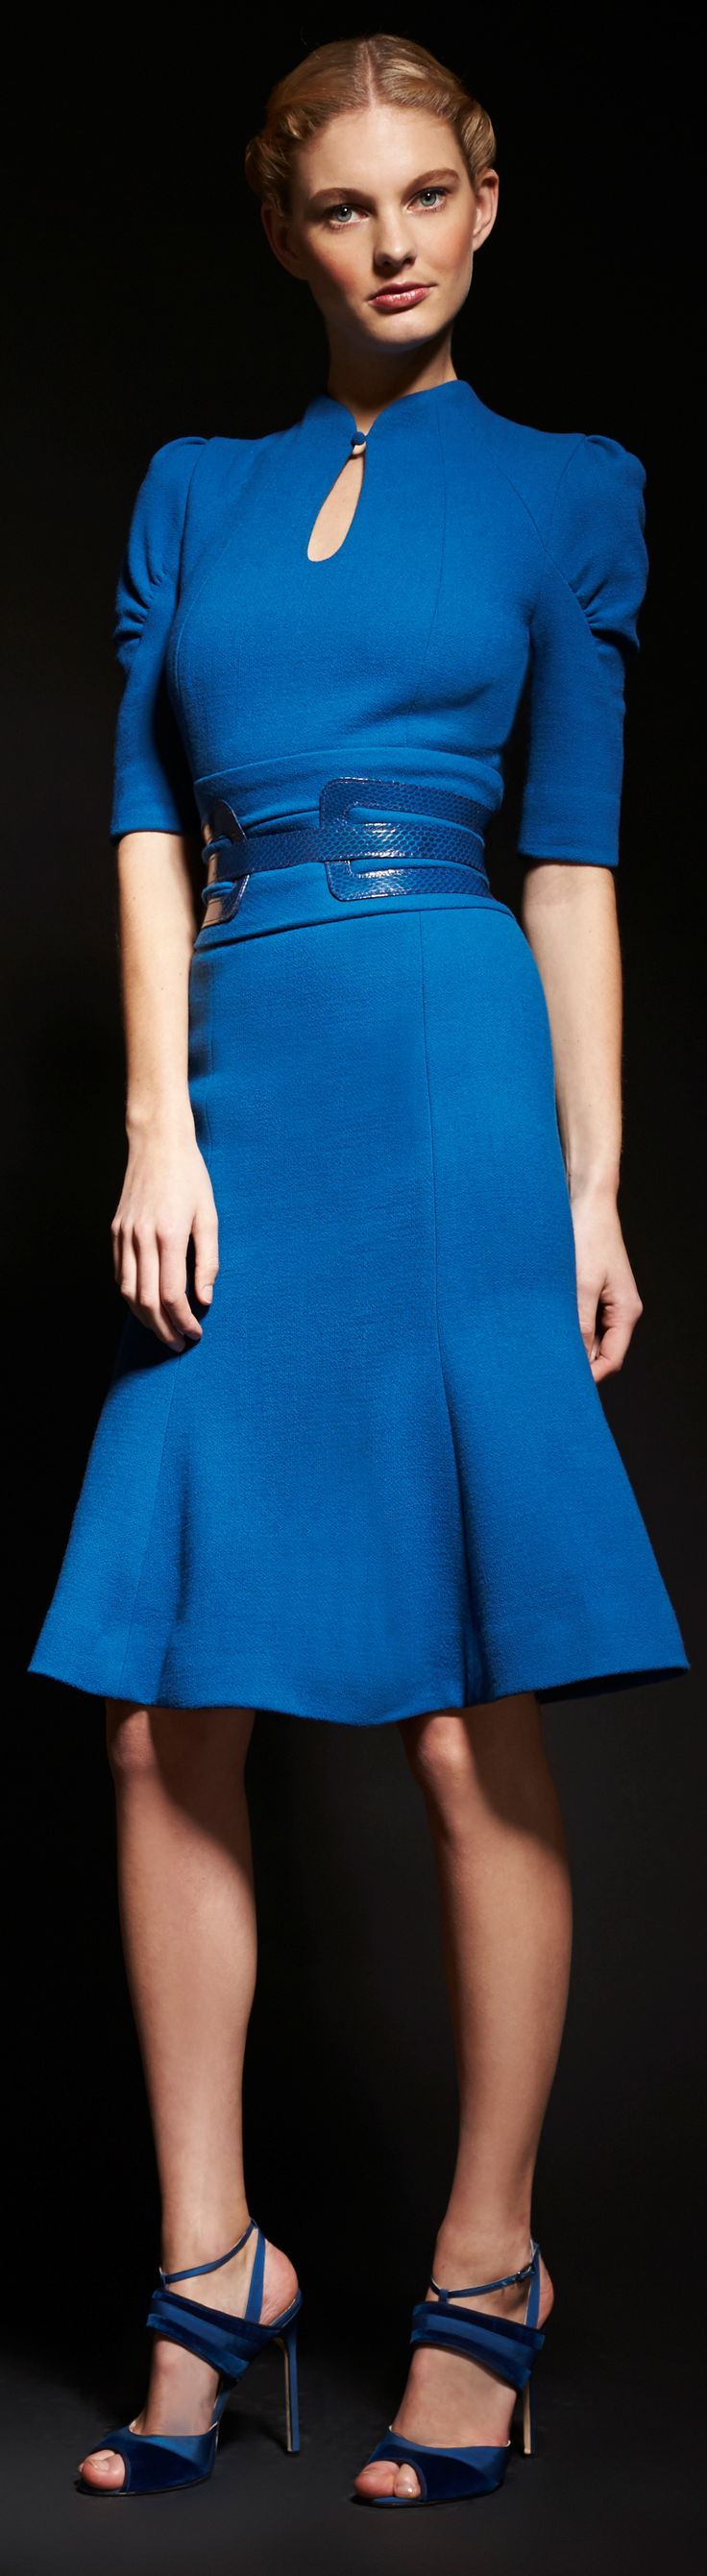 http://www.trendzystreet.com/  - Carolina Herrera Fall 2013. Cobalt blue dress with puffed sleeves, keyhole neck, wide belted waist, and godet skirt. Two-tone blue sandals.